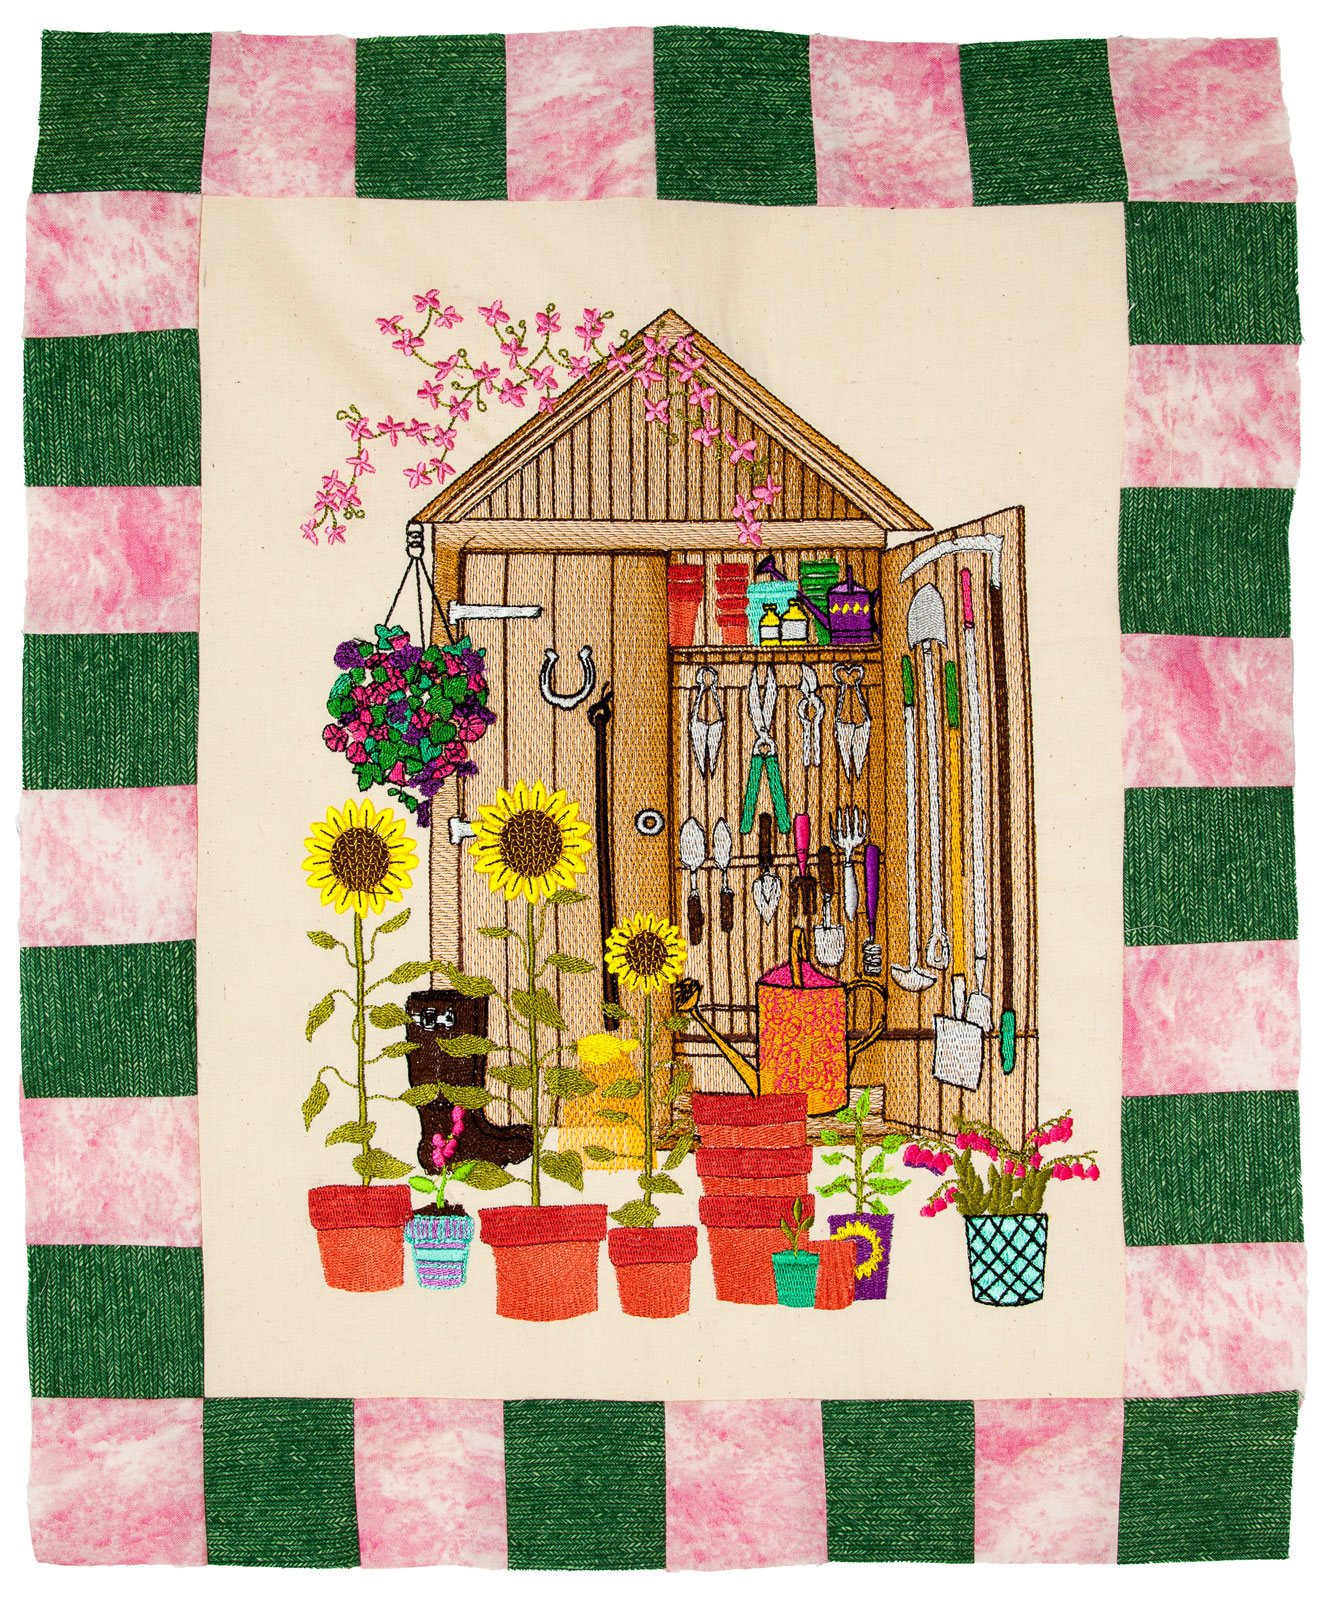 Bfc1633 gardening quilt collection the tool shed for Garden shed quilting